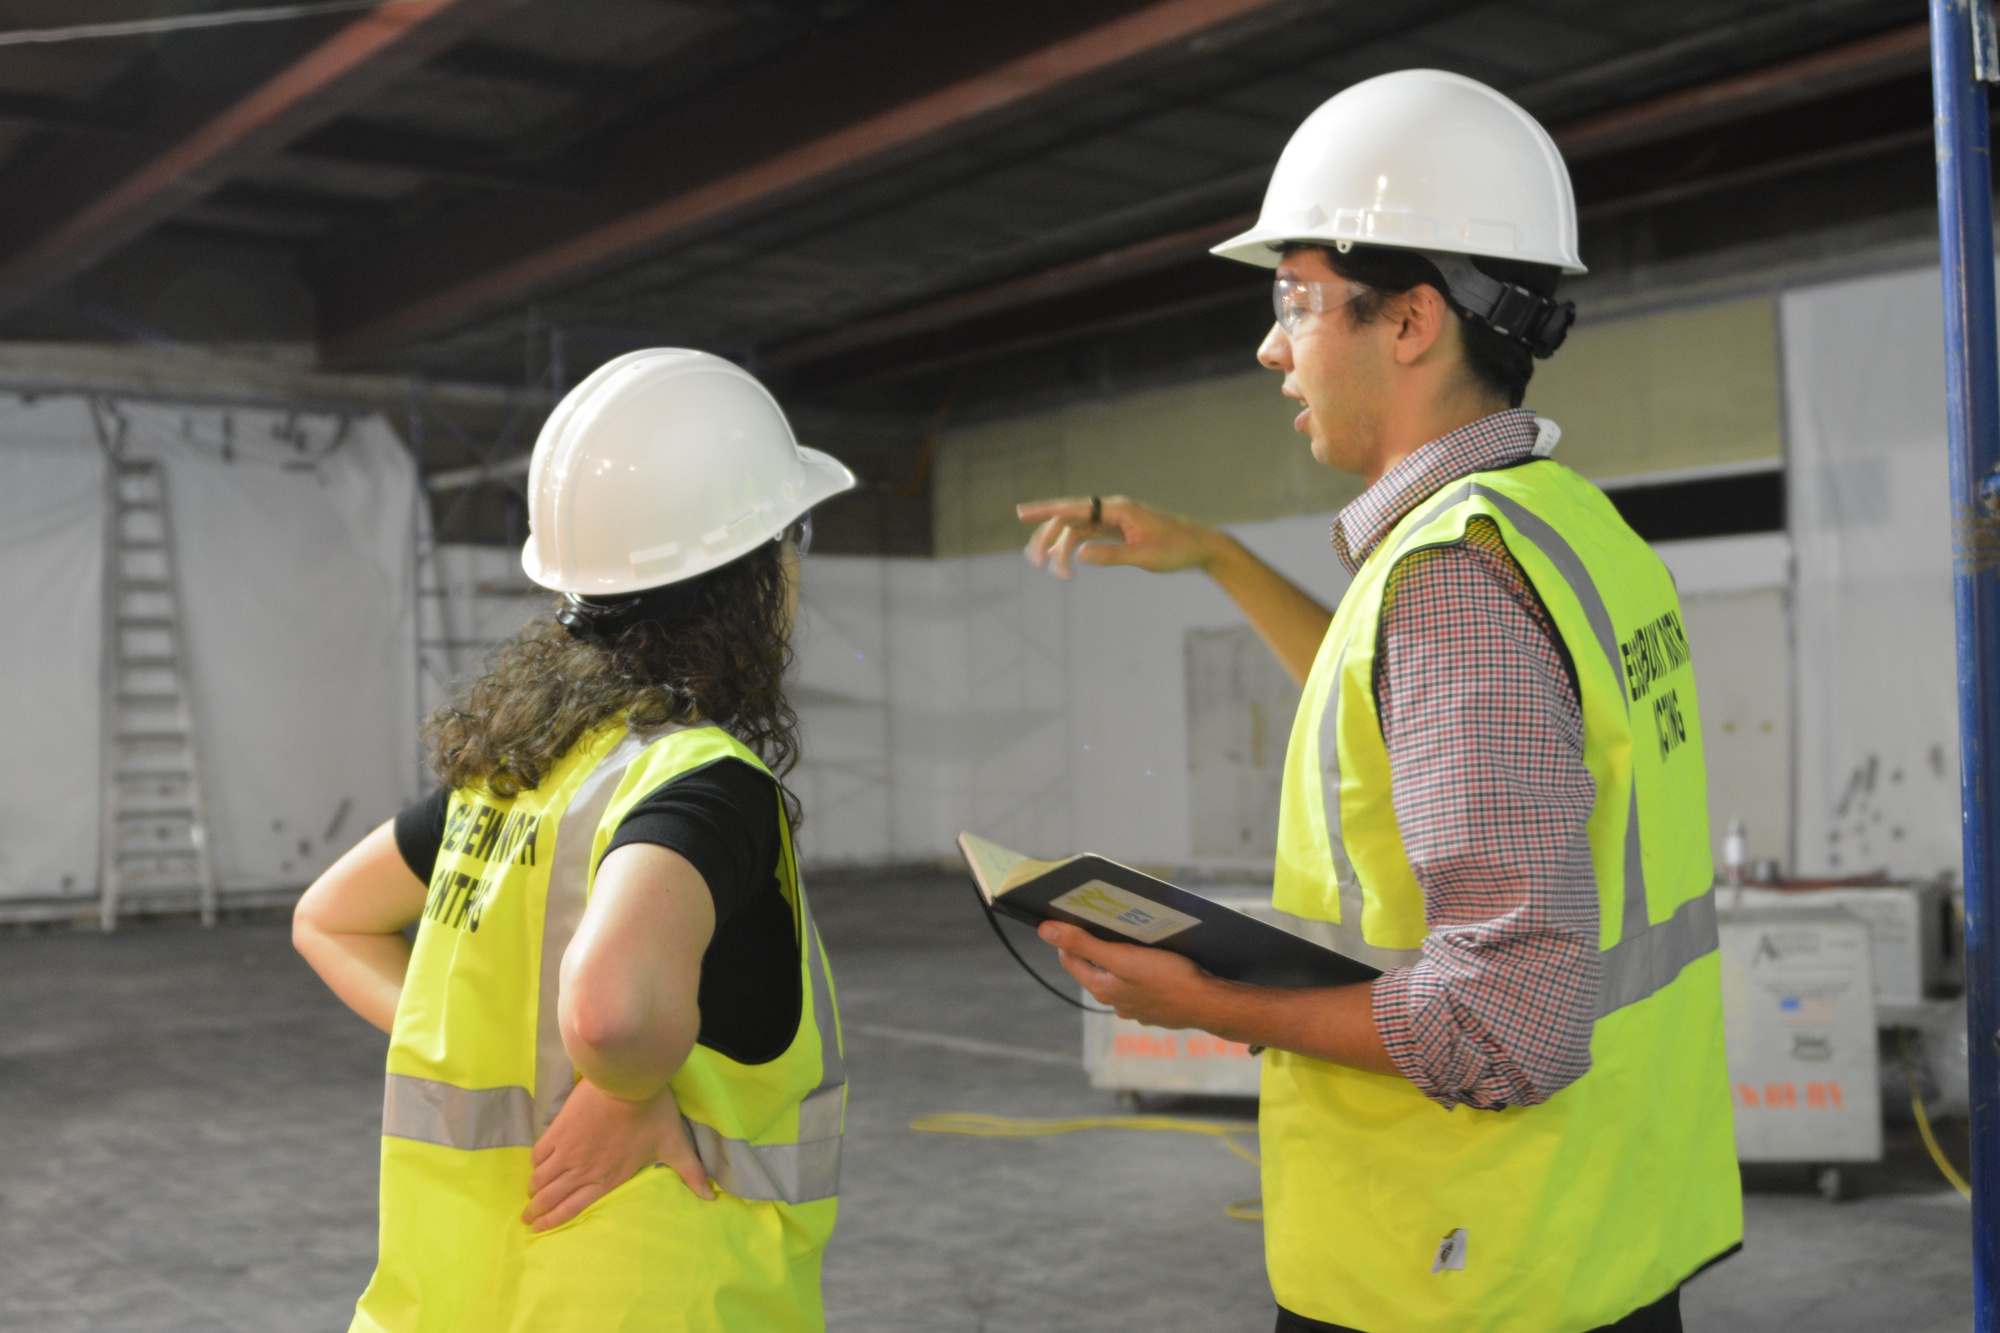 Y2Y Harvard Square co-directors Samuel G. Greenberg '14 and Sarah A. Rosenkrantz '14 discuss construction plans in the heart of the soon-to-be shelter. The shelter, located at First Parish Church, will include 22 beds for homeless youth.